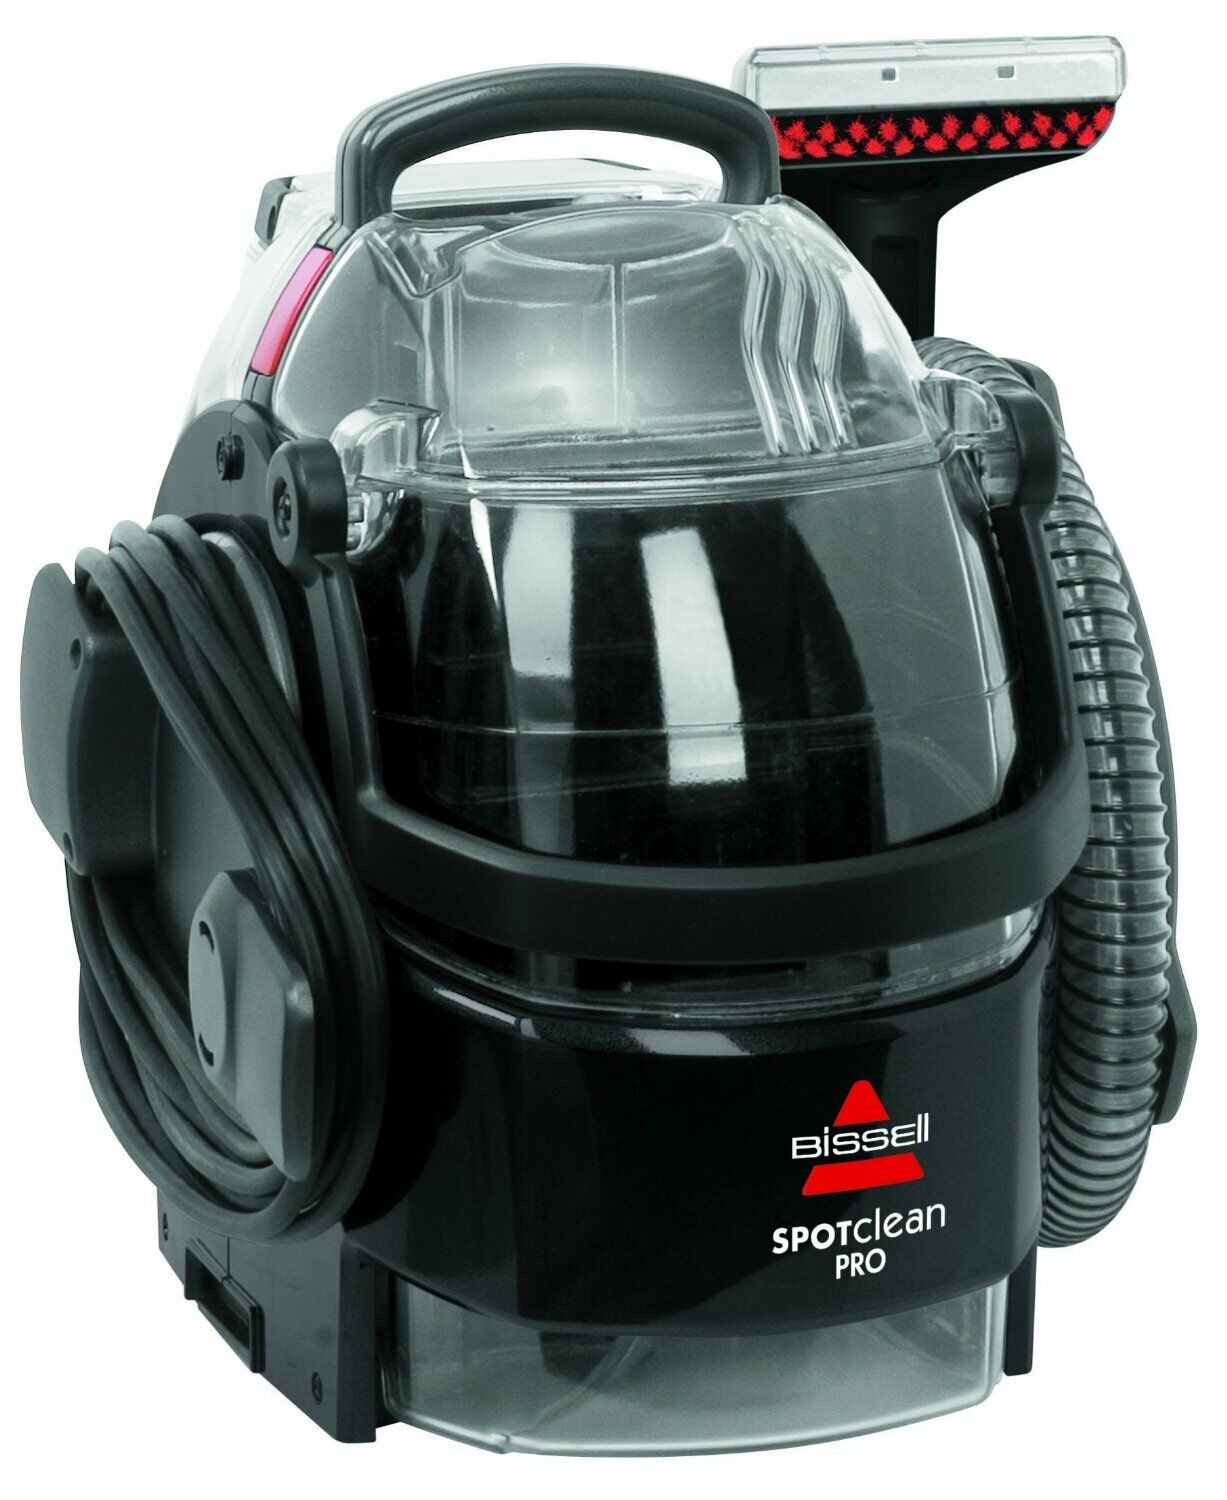 Bissell SpotClean Professional Portable Carpet Cleaner Corde